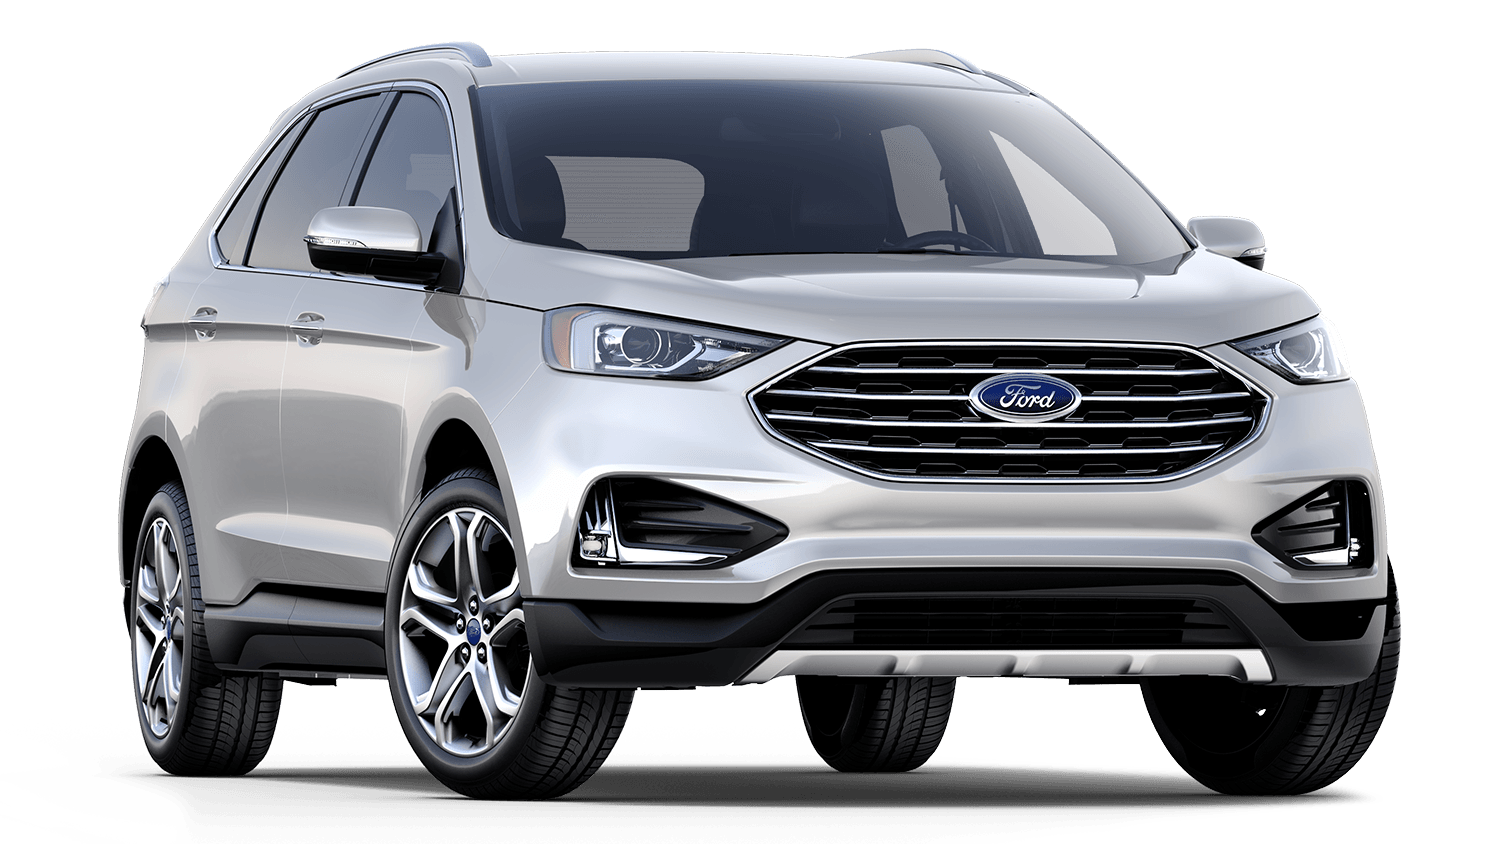 Ford Dealerships In Nc >> Capital Ford of Raleigh NC | North Carolina Ford Dealership